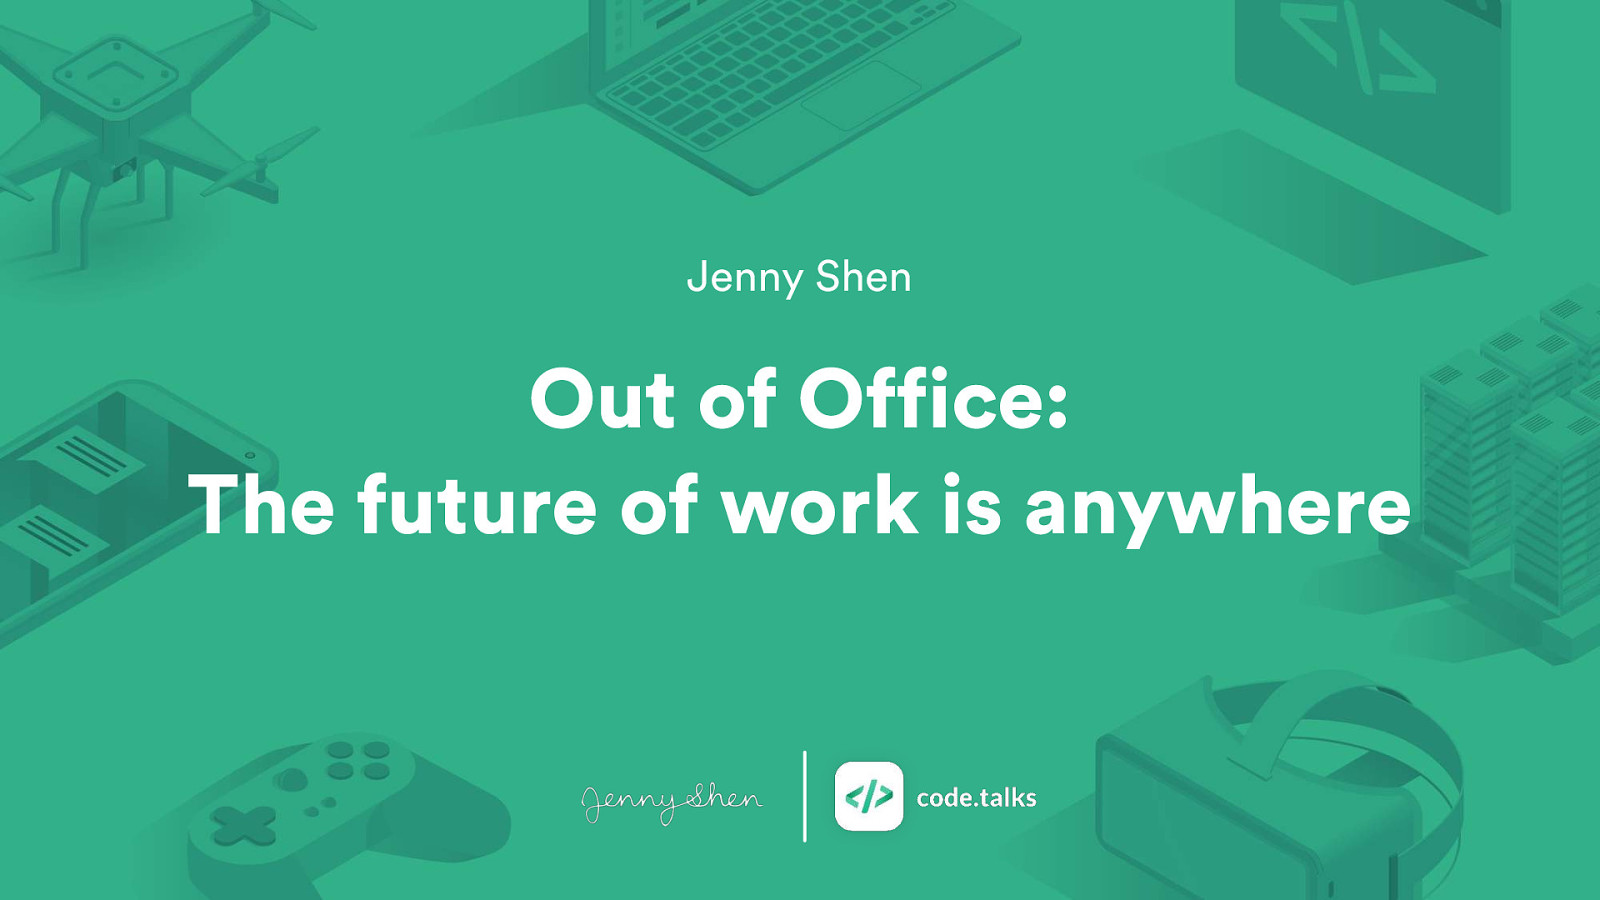 Out of Office: The future of work is anywhere